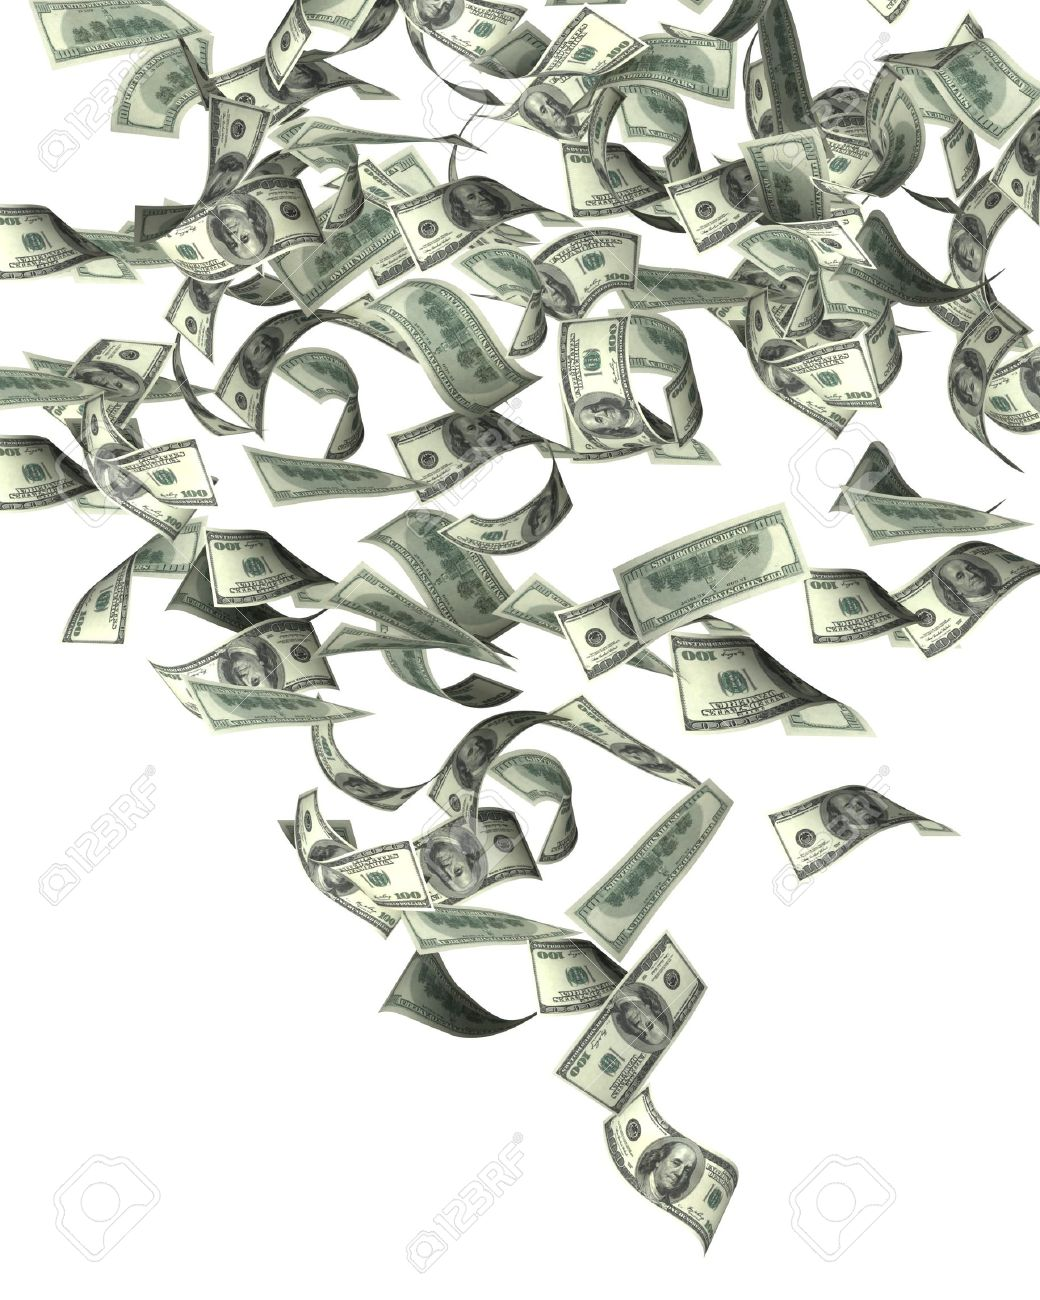 Symbol of wealth and success rain from dollars stock photo symbol of wealth and success rain from dollars stock photo 7661761 buycottarizona Gallery